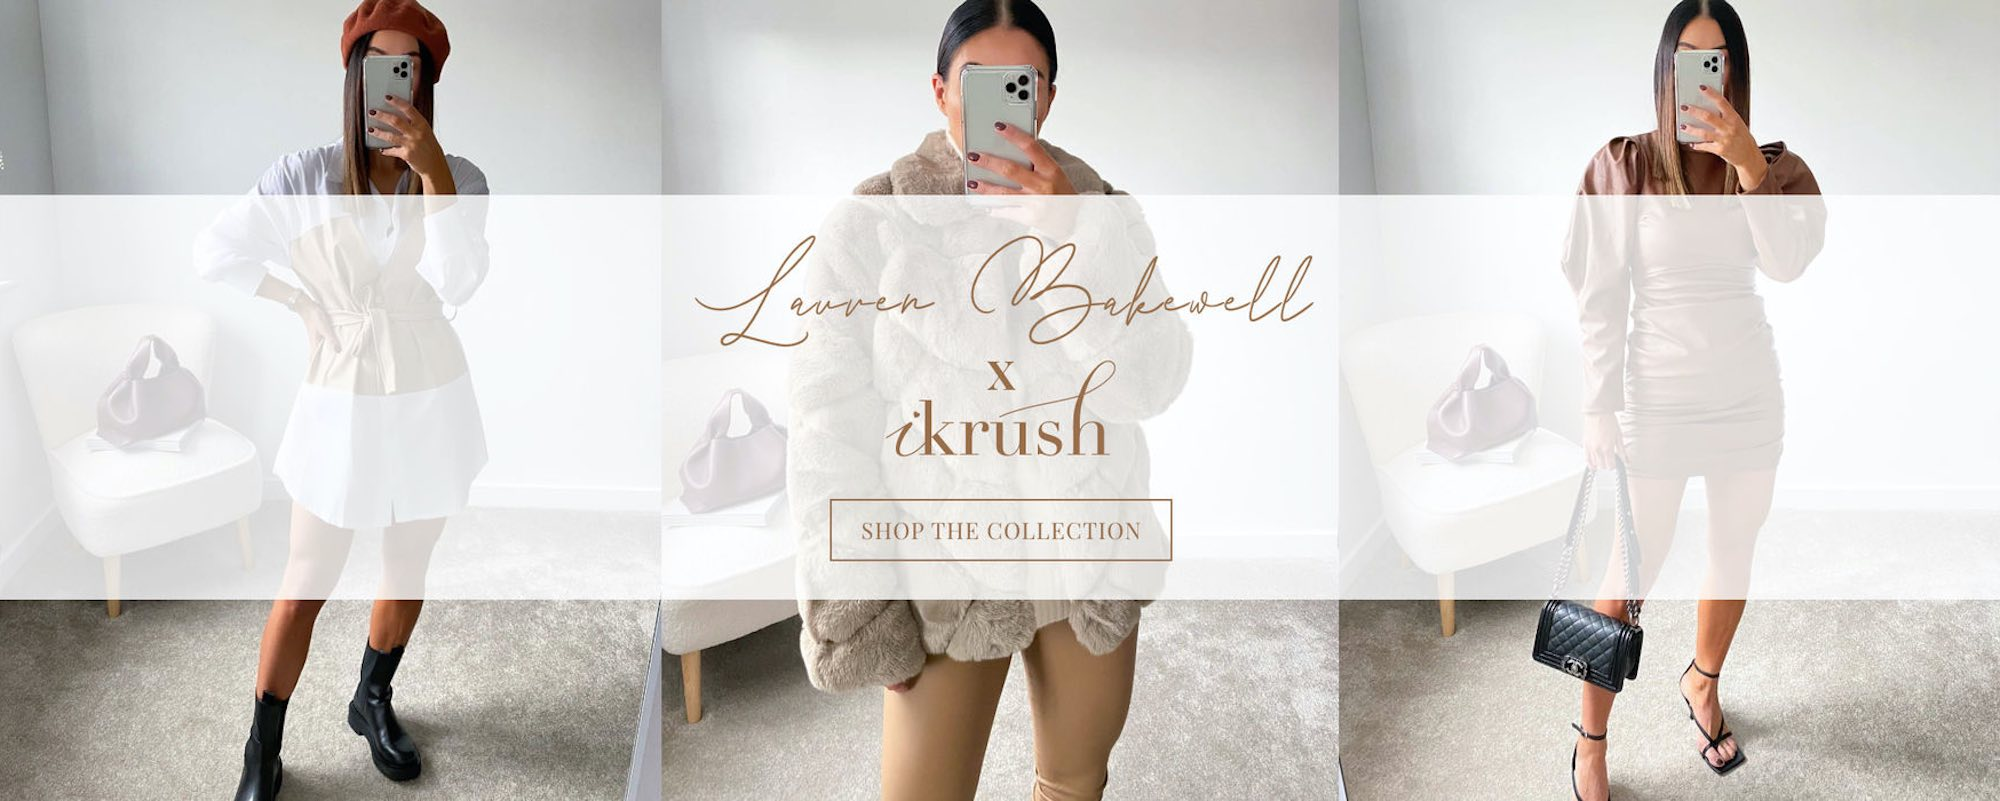 Lauren Bakewell Collection at IKRUSH